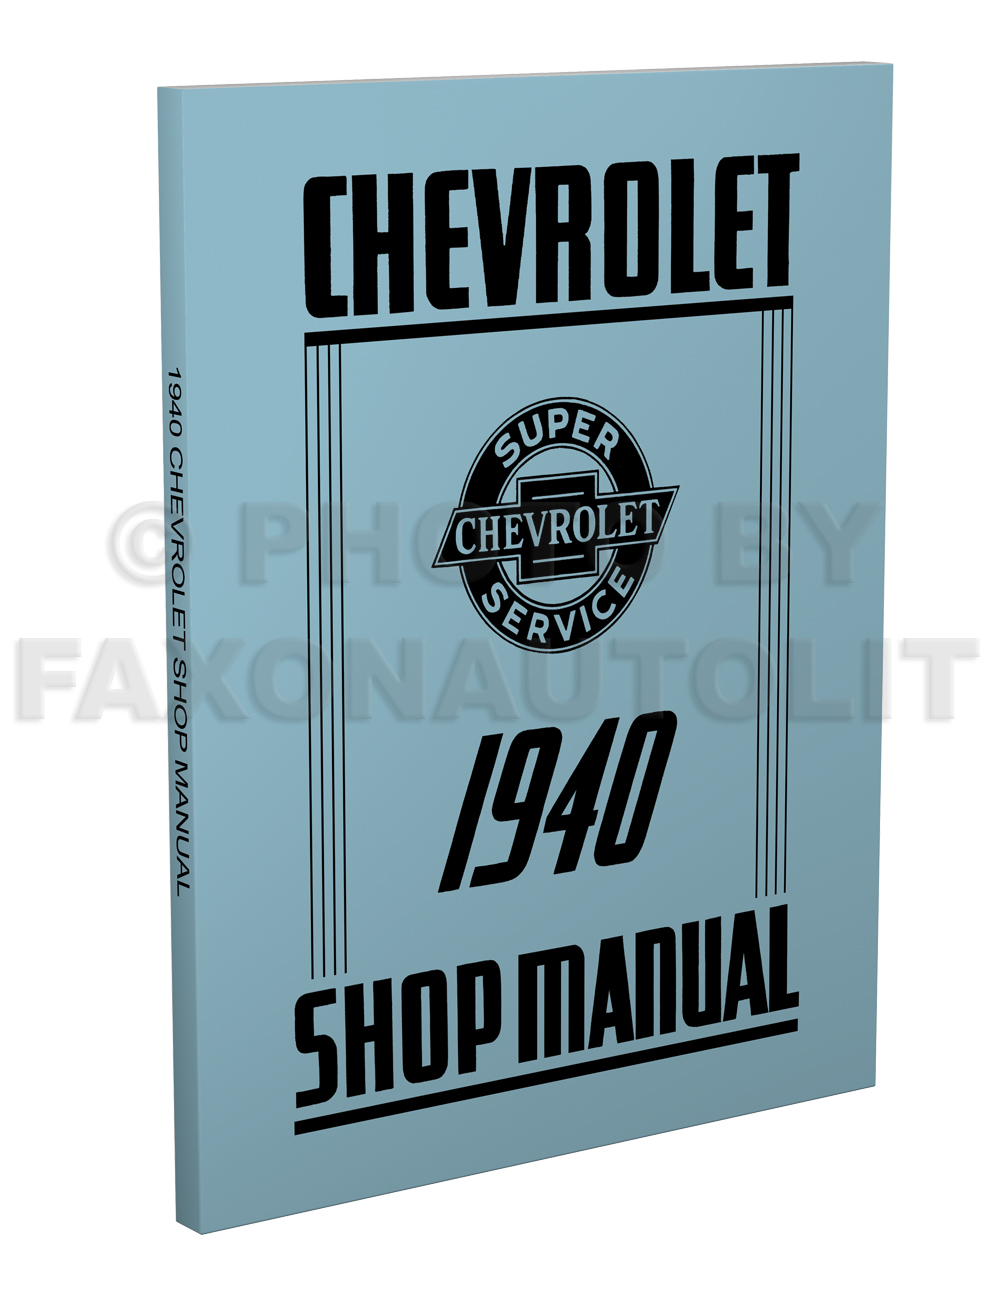 1940 Chevrolet Shop Manual Reprint for 40 Chevy Car, Pickup, & Truck